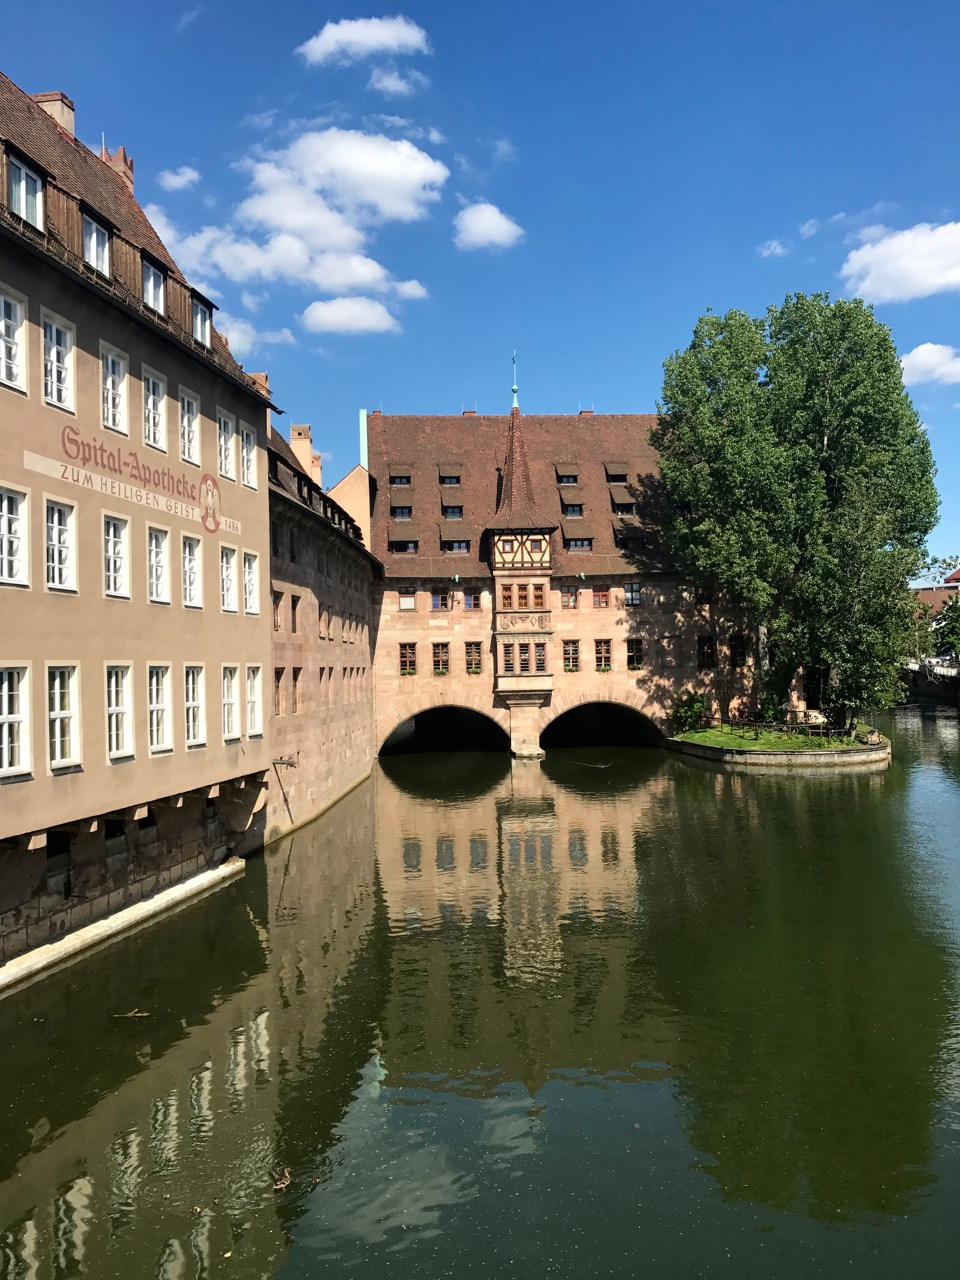 One of the famous sites in Nuremberg!